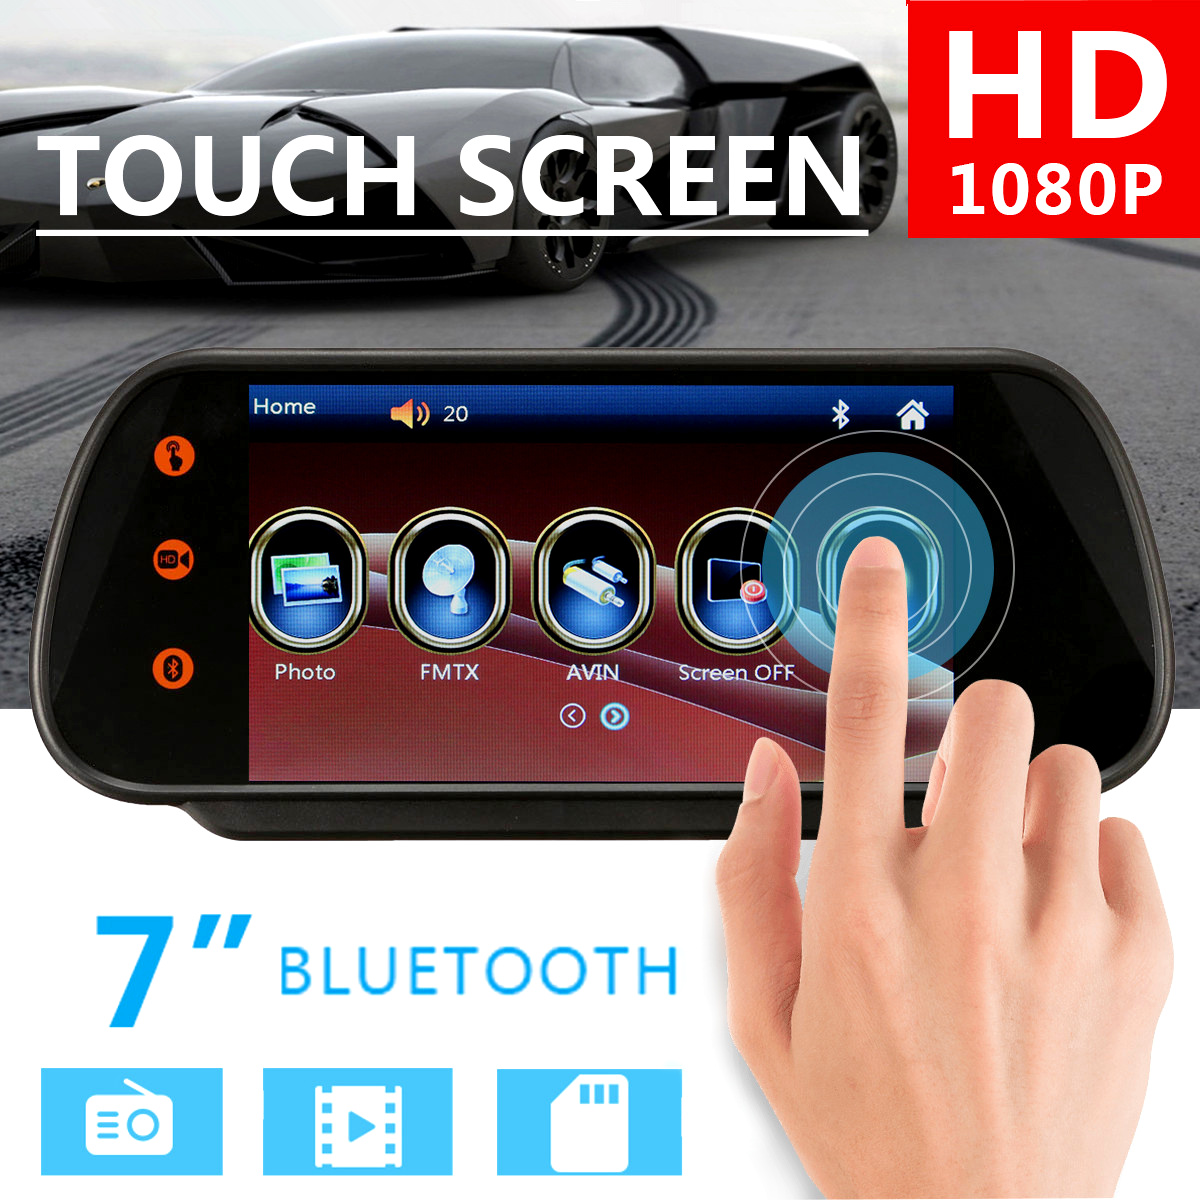 7'' TFT LCD Touch Screen Car Auto Video DVD MP5 Player HD Rearview Mirror Monitor Bluetooth MP5 Radio Parking Reverse Camera